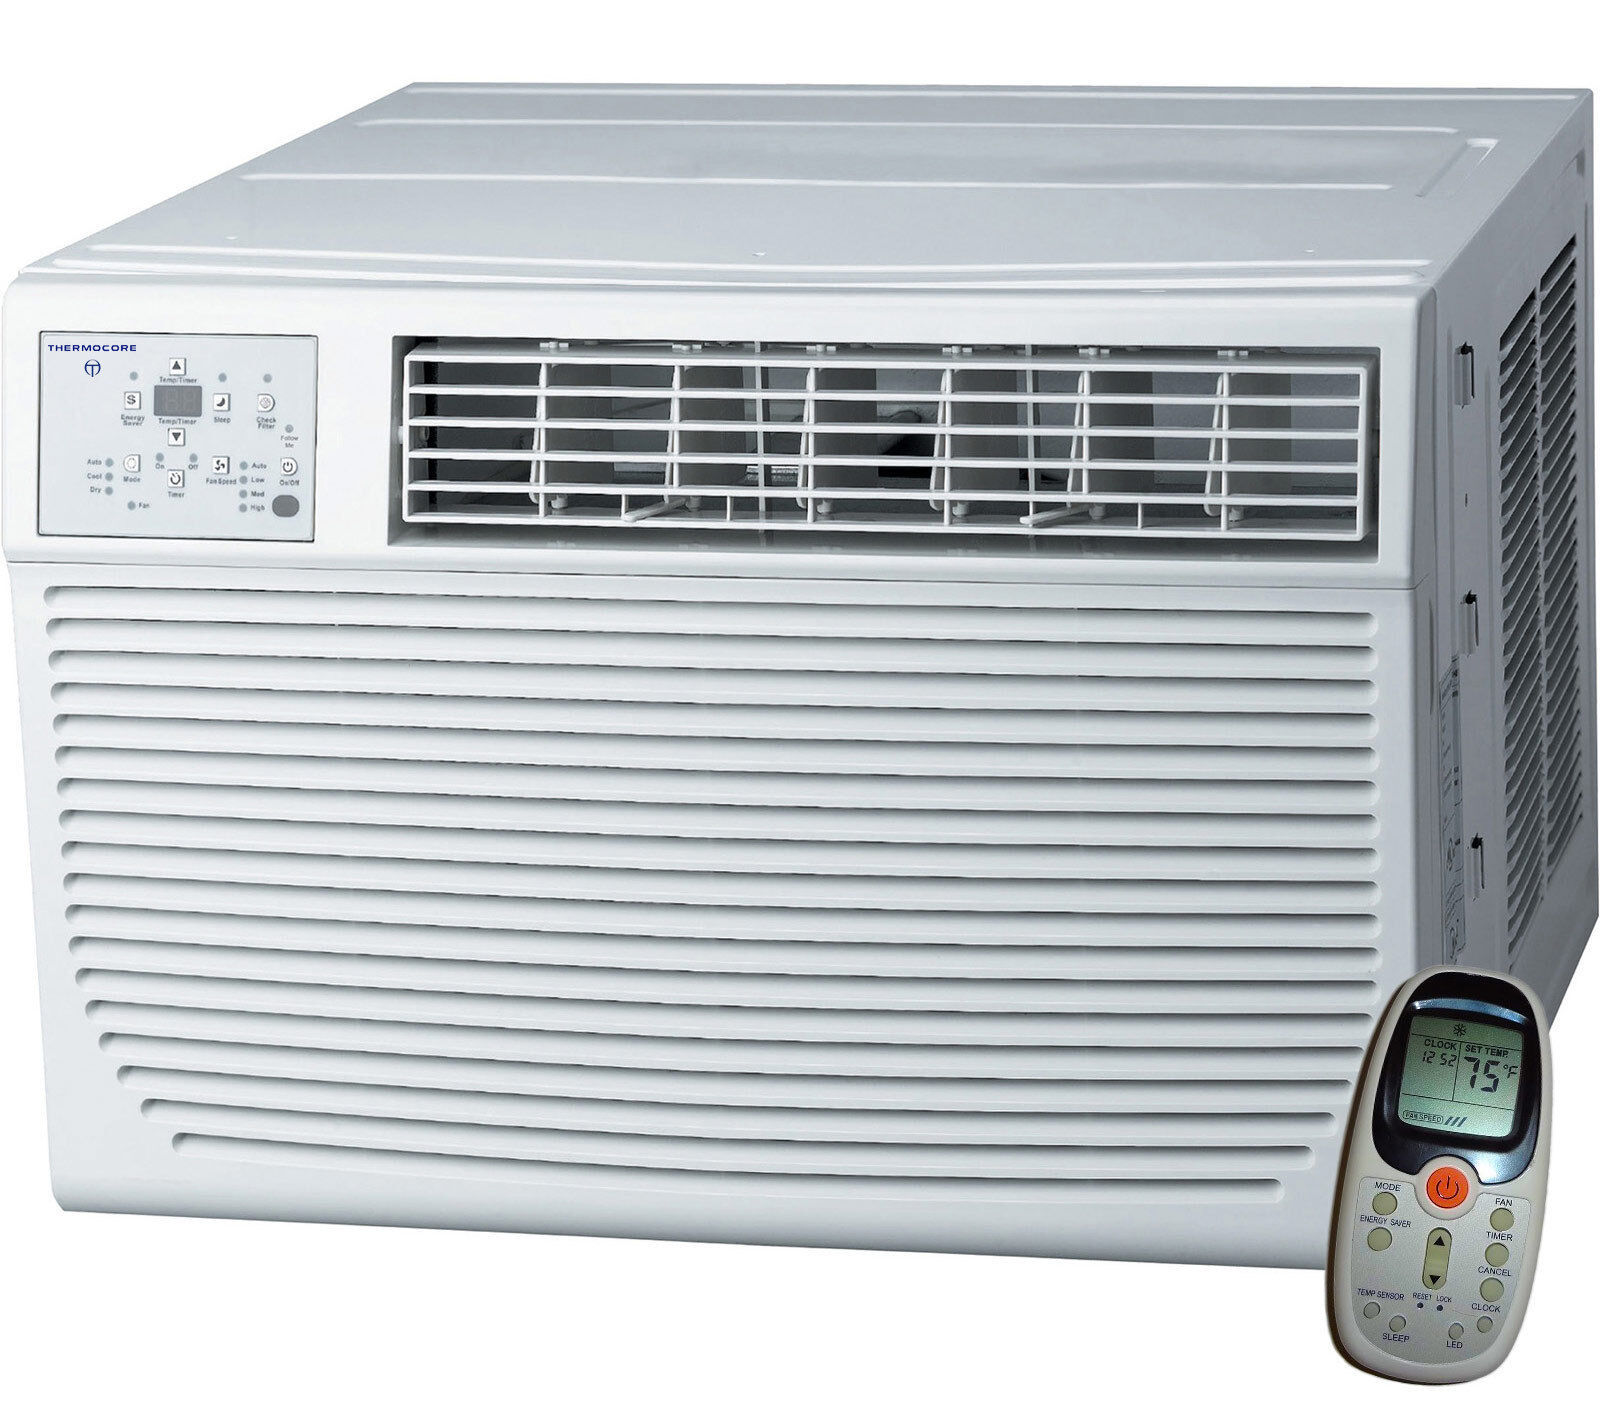 12 000 btu window air conditioner room heat pump 12000 for 12 000 btu window air conditioner